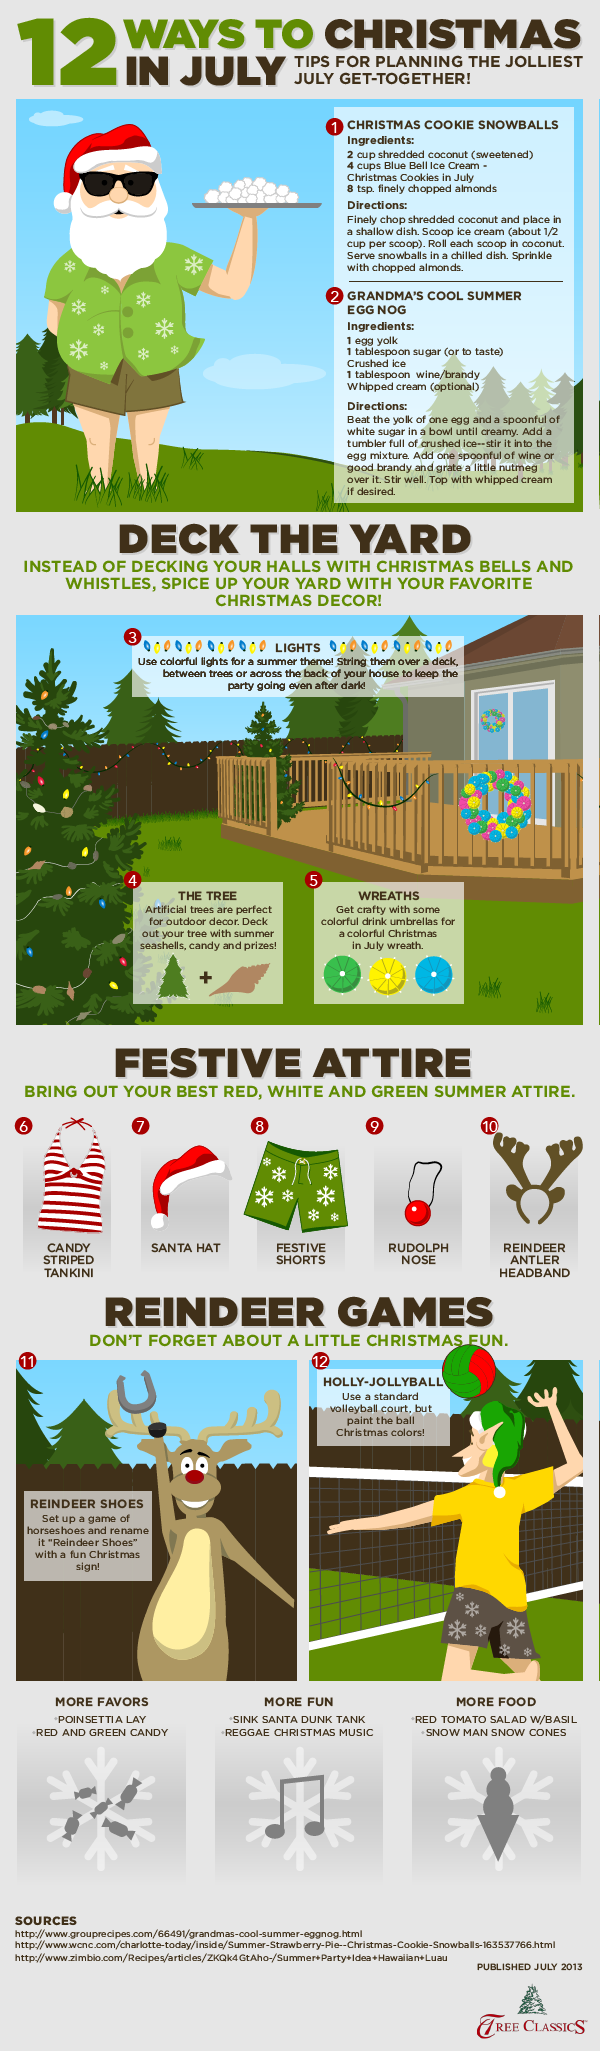 12-ways-to-christmas-in-july-infographic